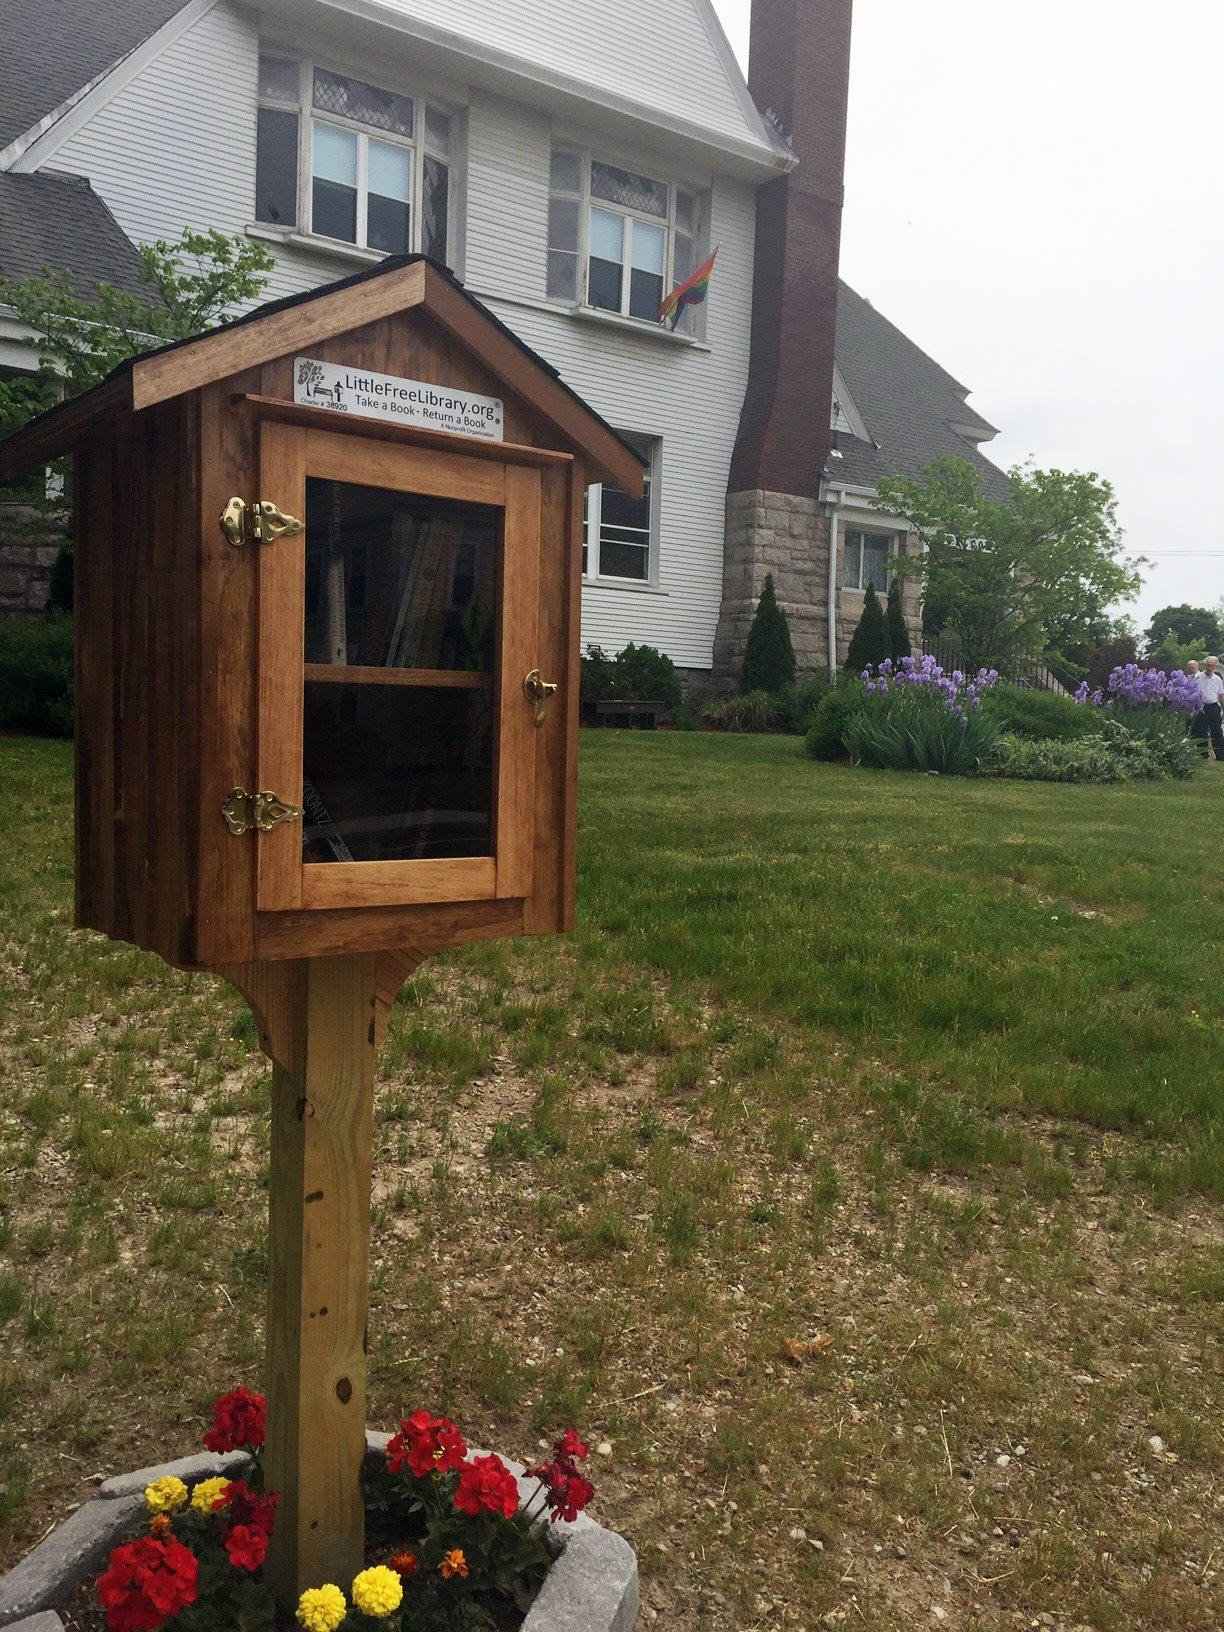 Come visit our Little Free Library right on the front lawn!